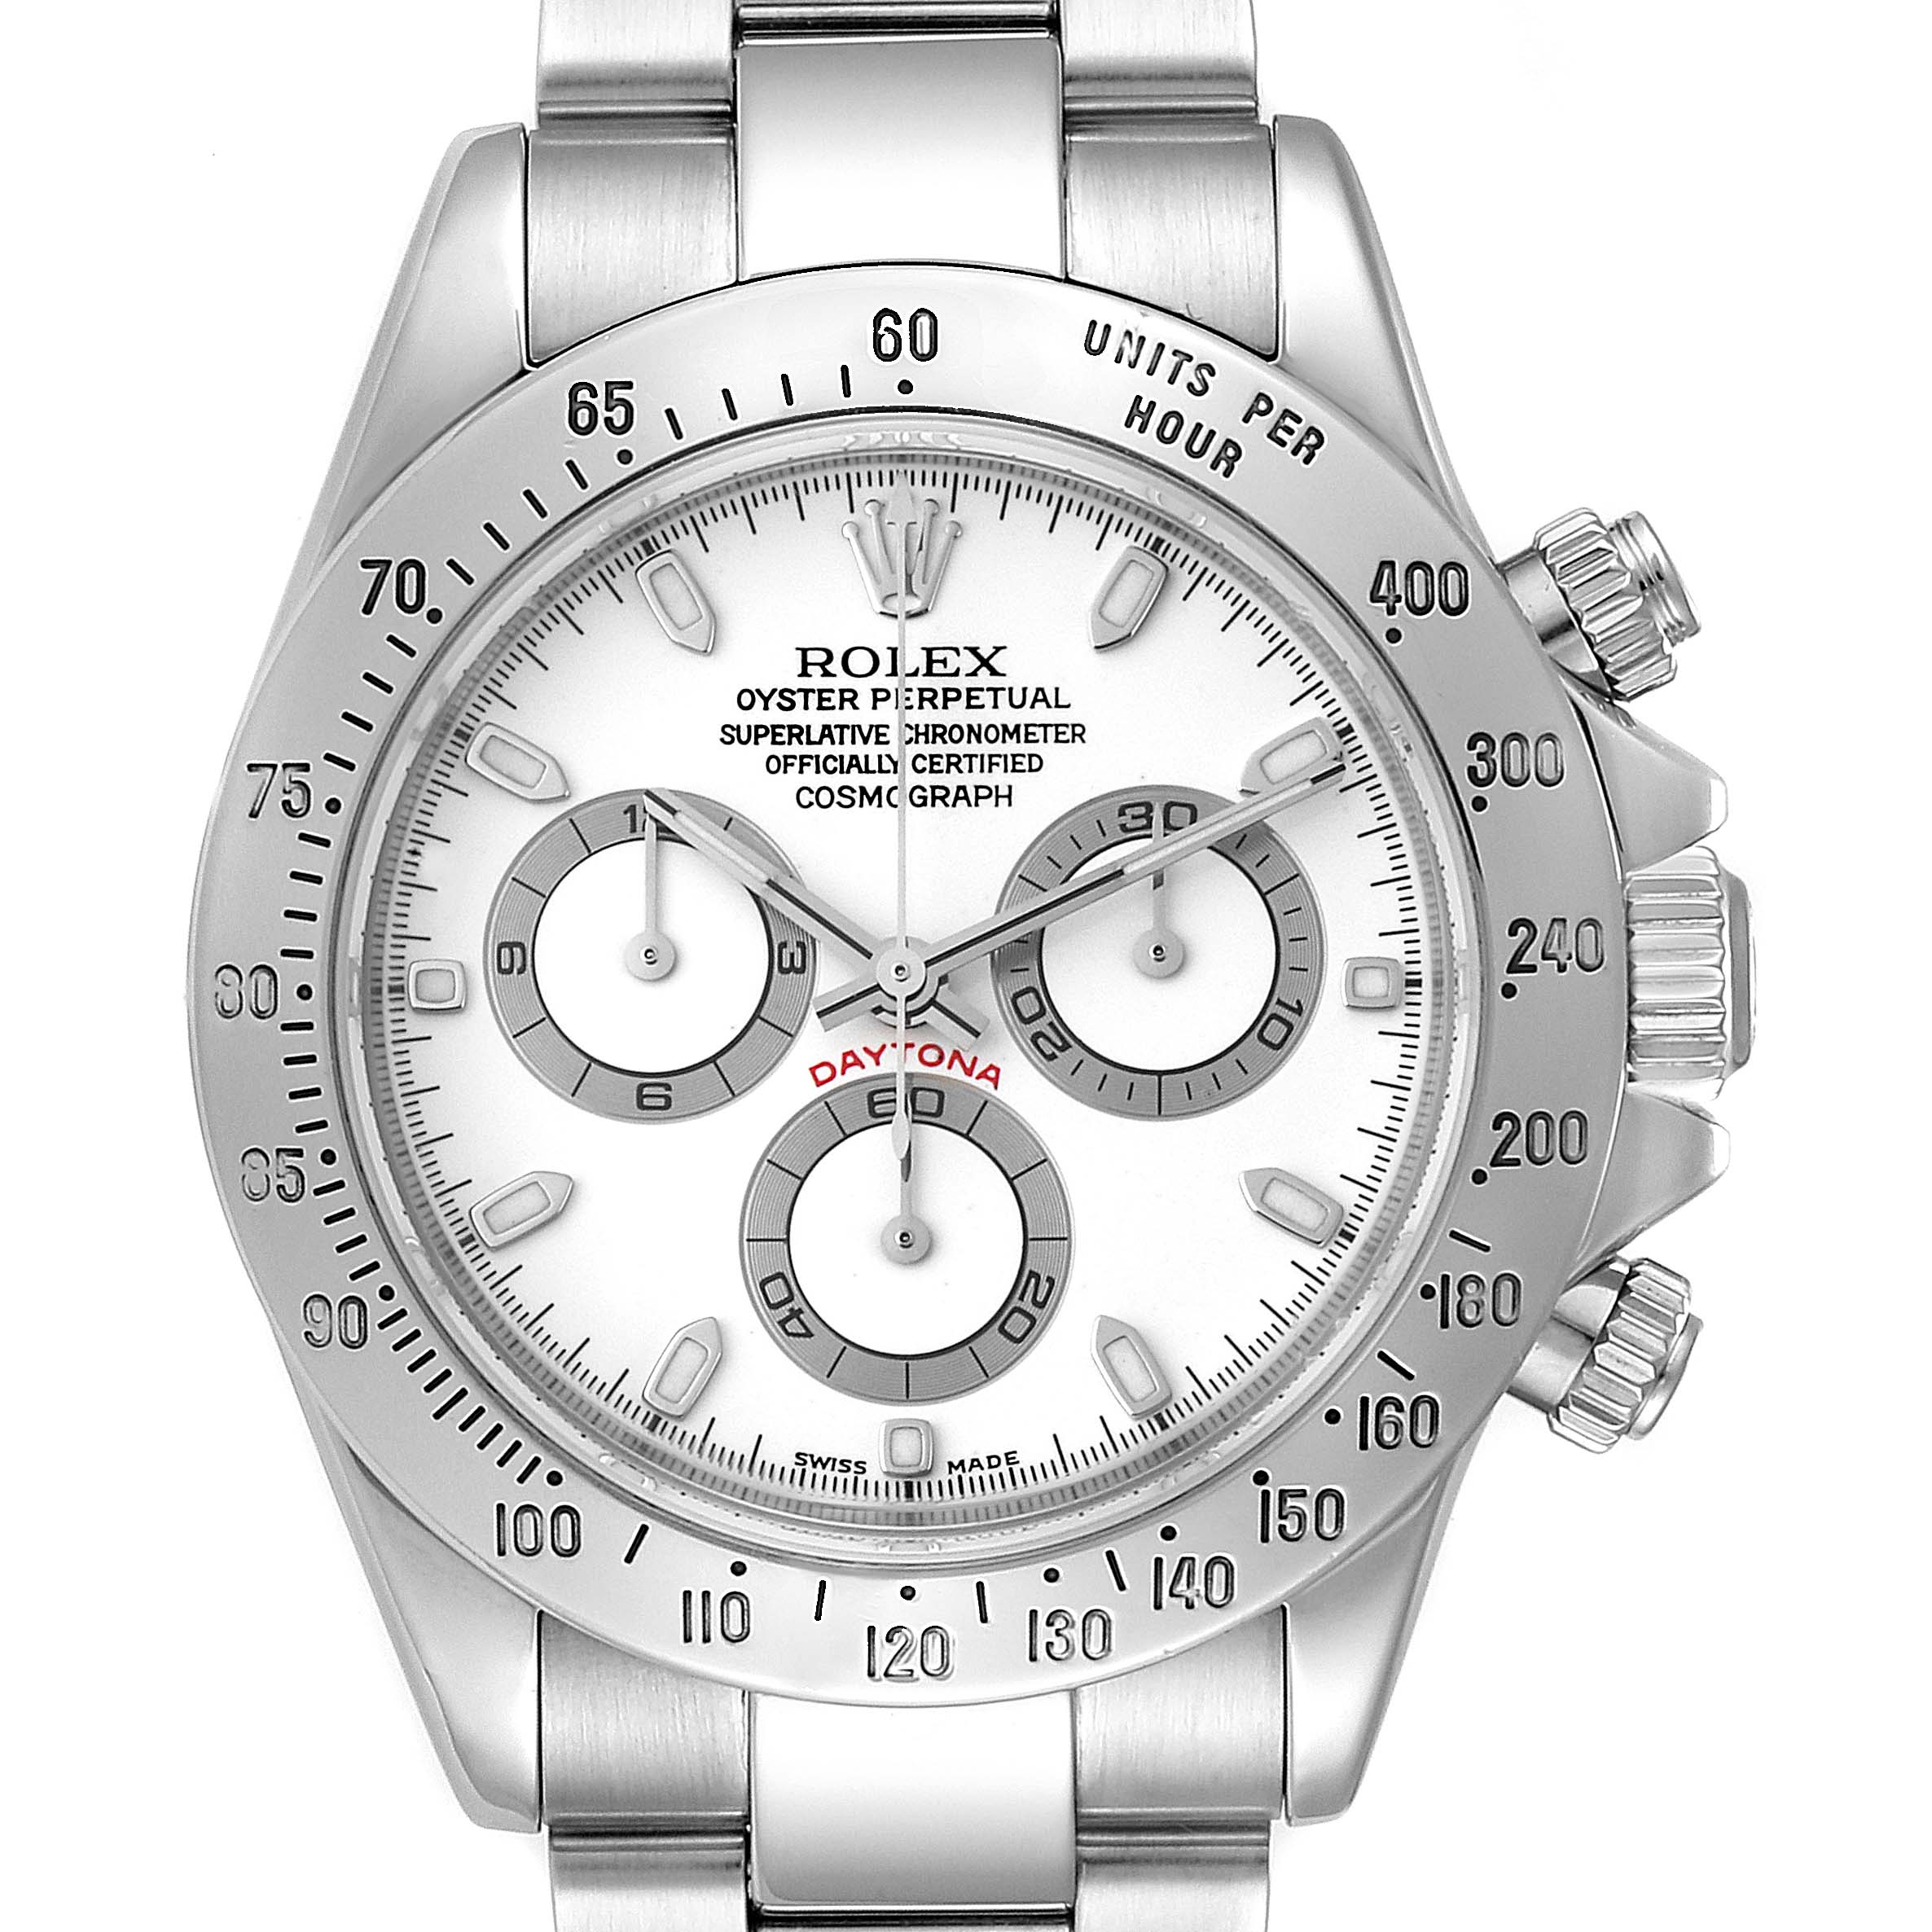 Rolex Daytona White Dial Chronograph Stainless Steel Mens Watch 116520